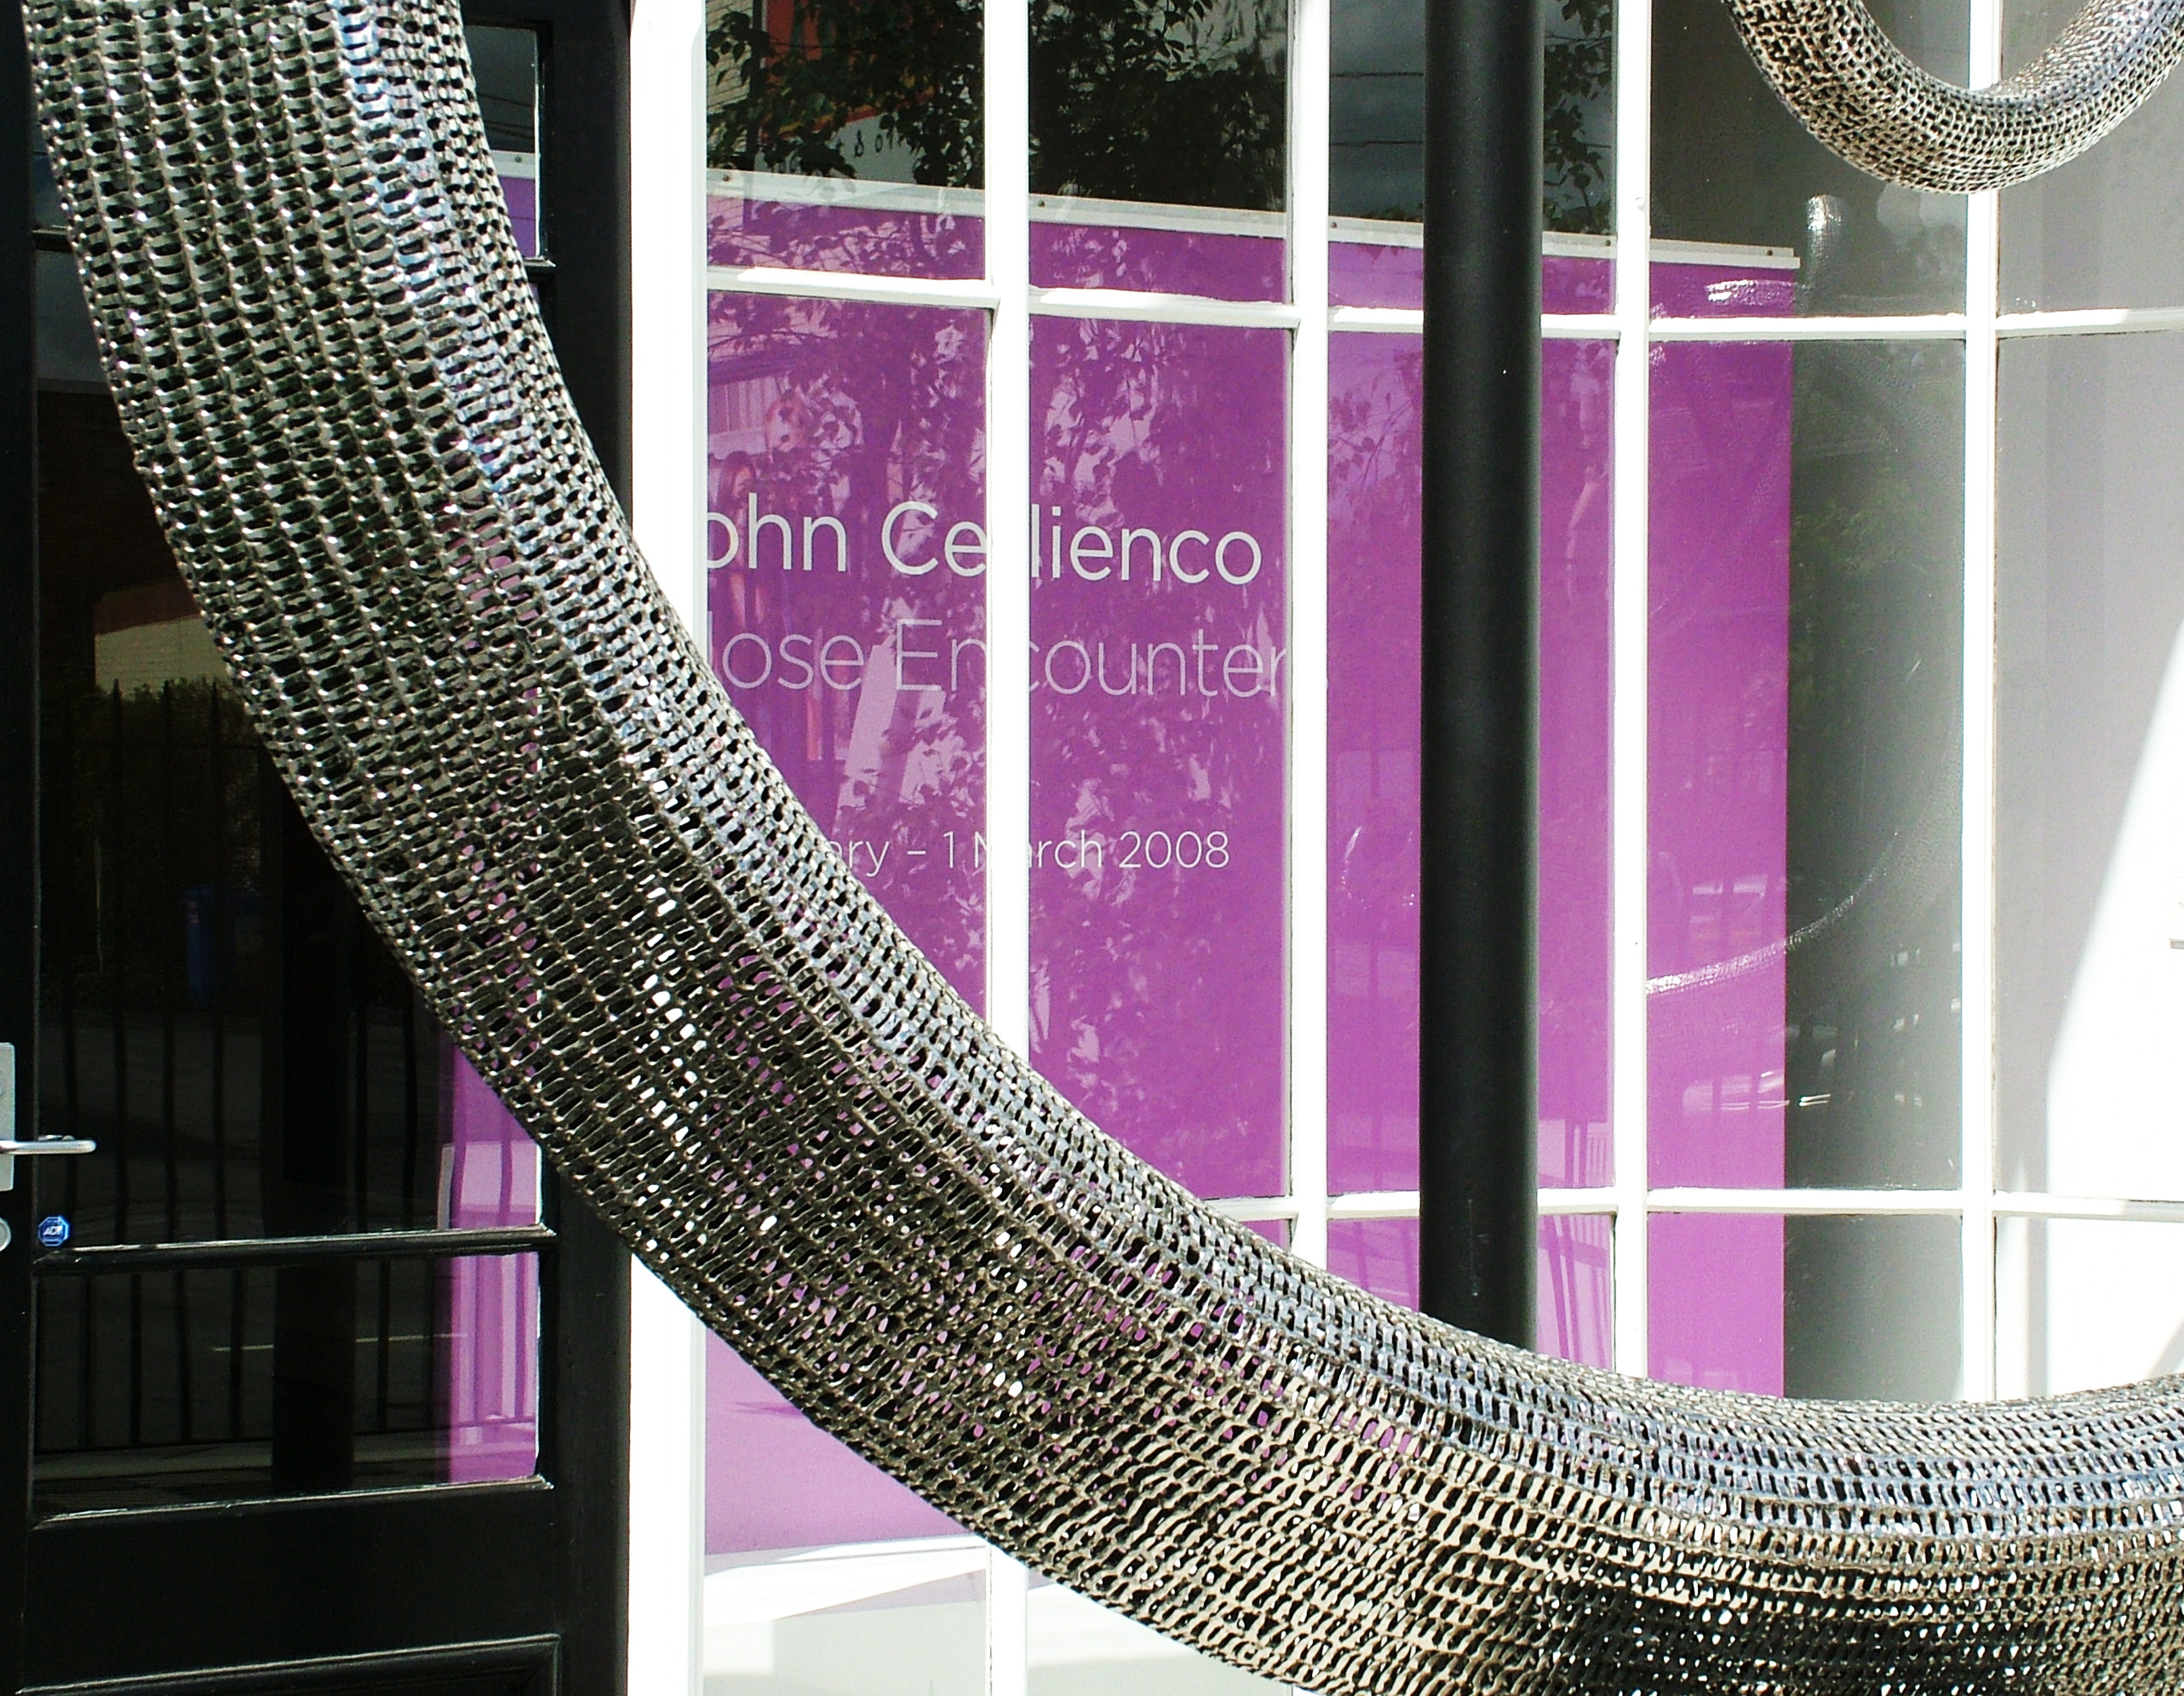 Front window of Mossgreen Gallery entrance advertising Çlose Encounters'2008 exhibition